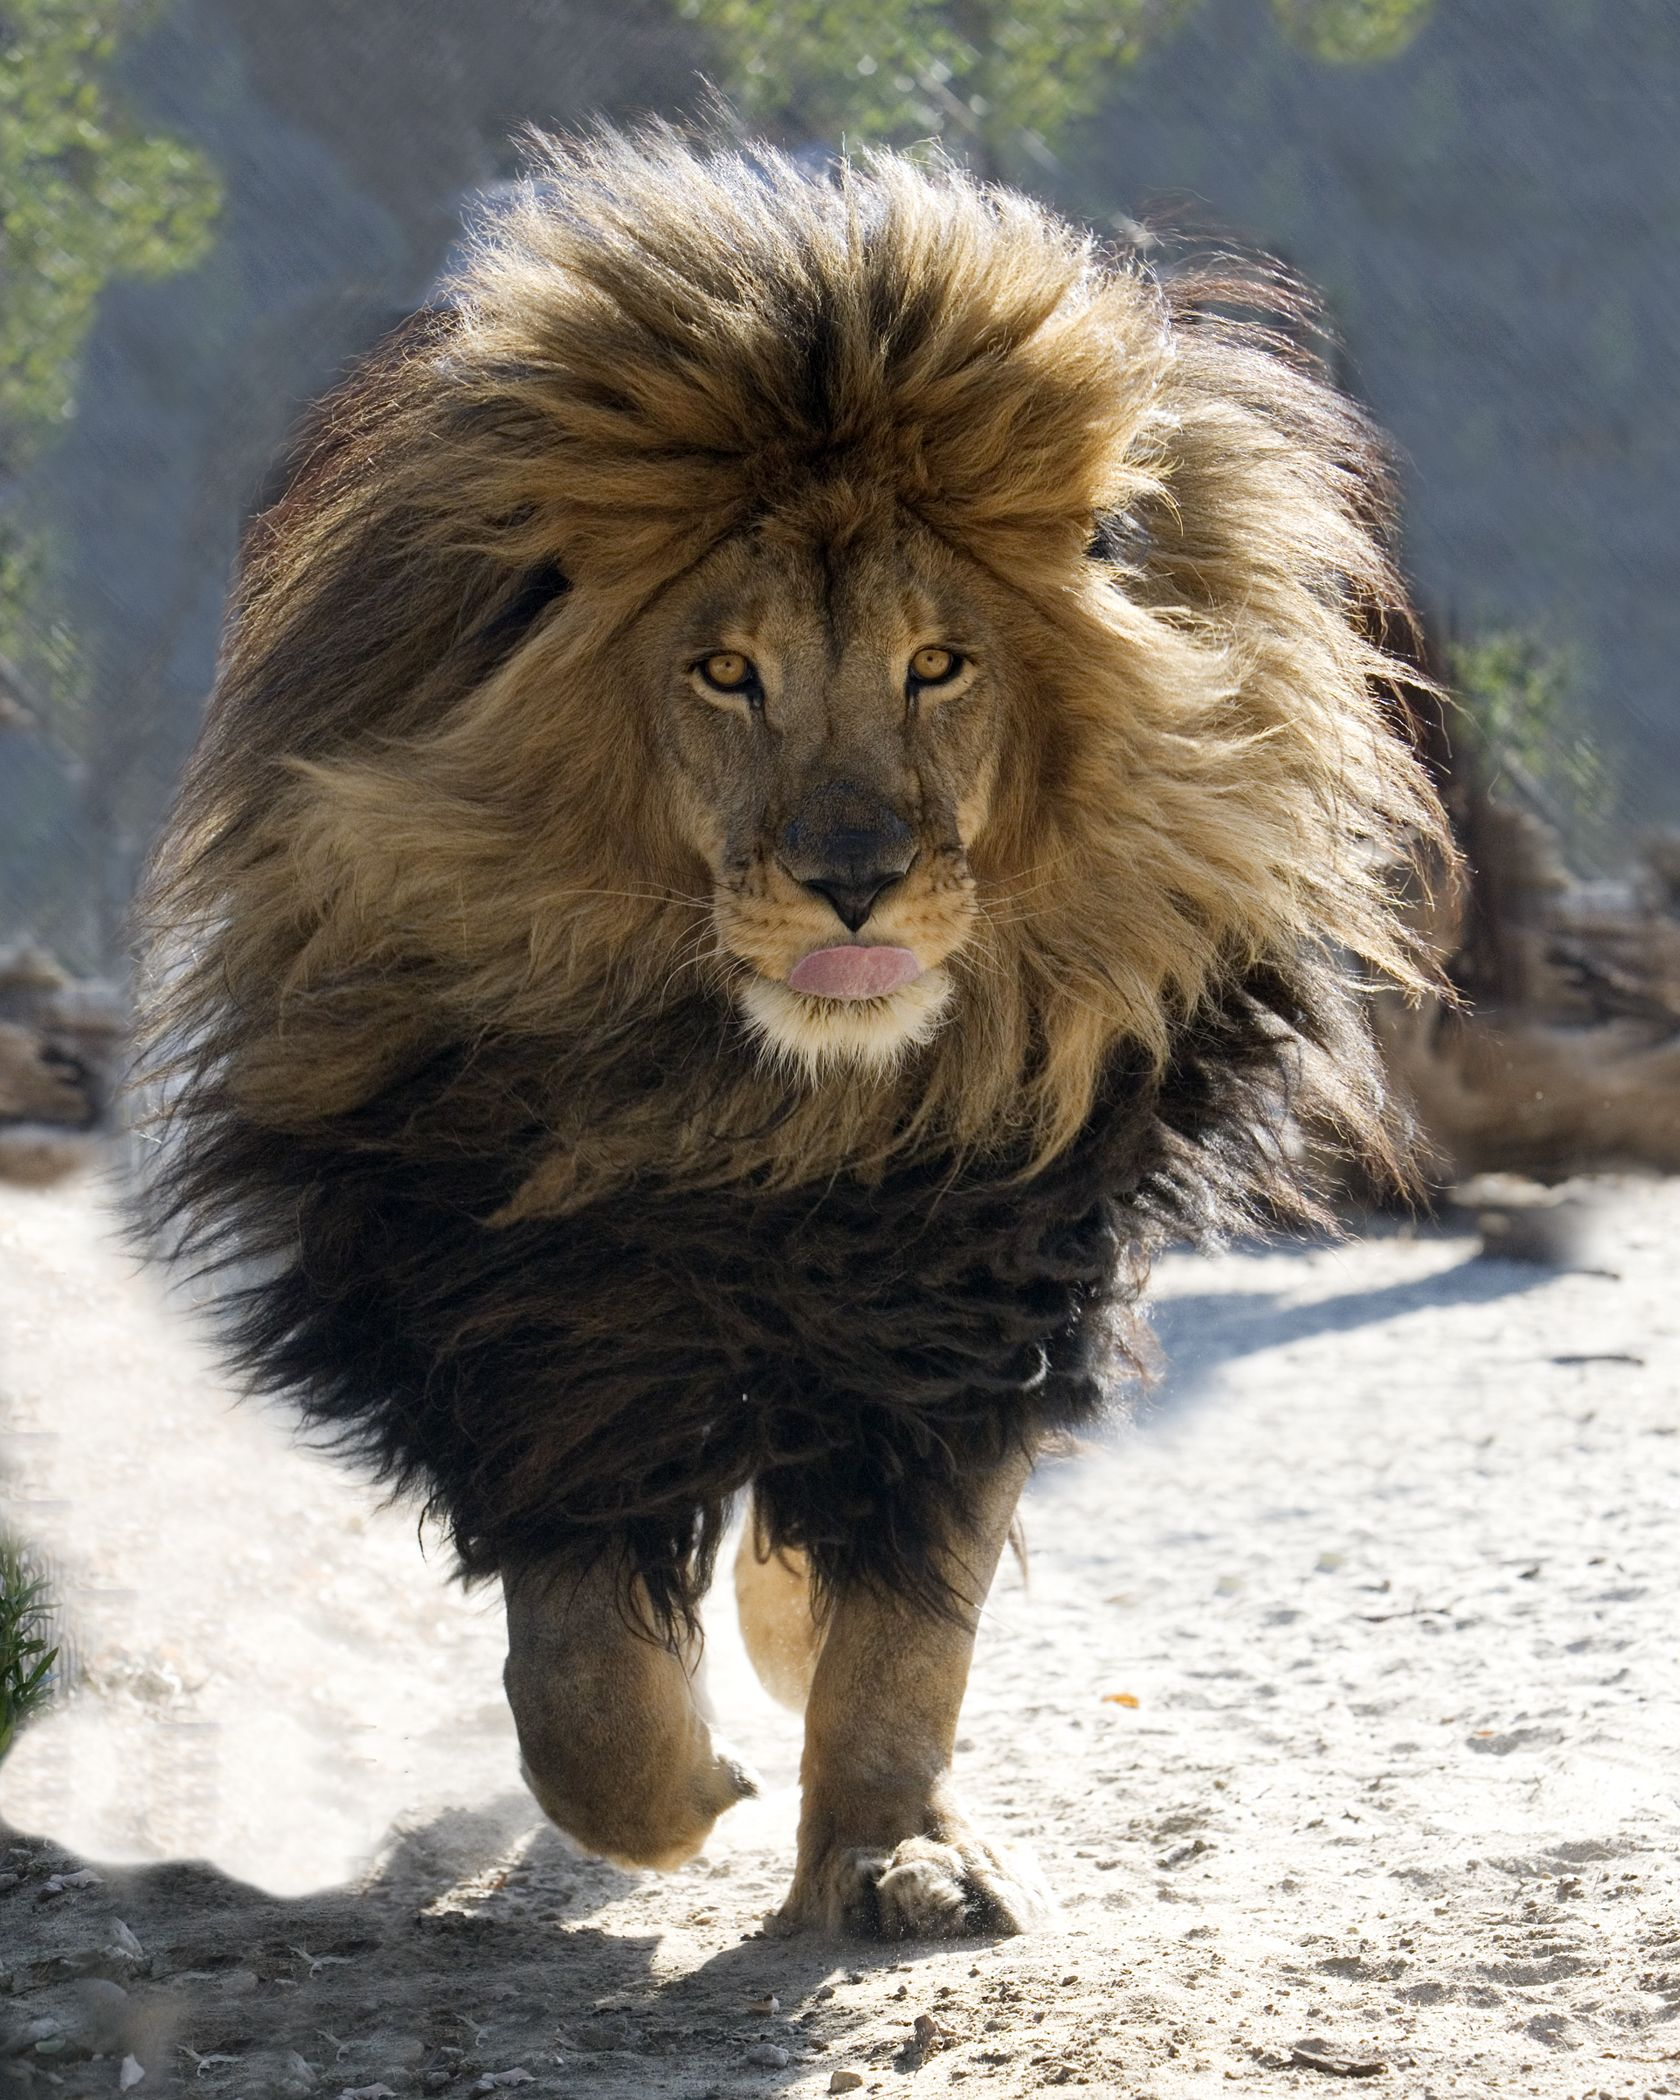 Zeus Photographed By My Friend Bill Dow At The Shambala Preserve In Acton California Animals Animals Beautiful Big Cats